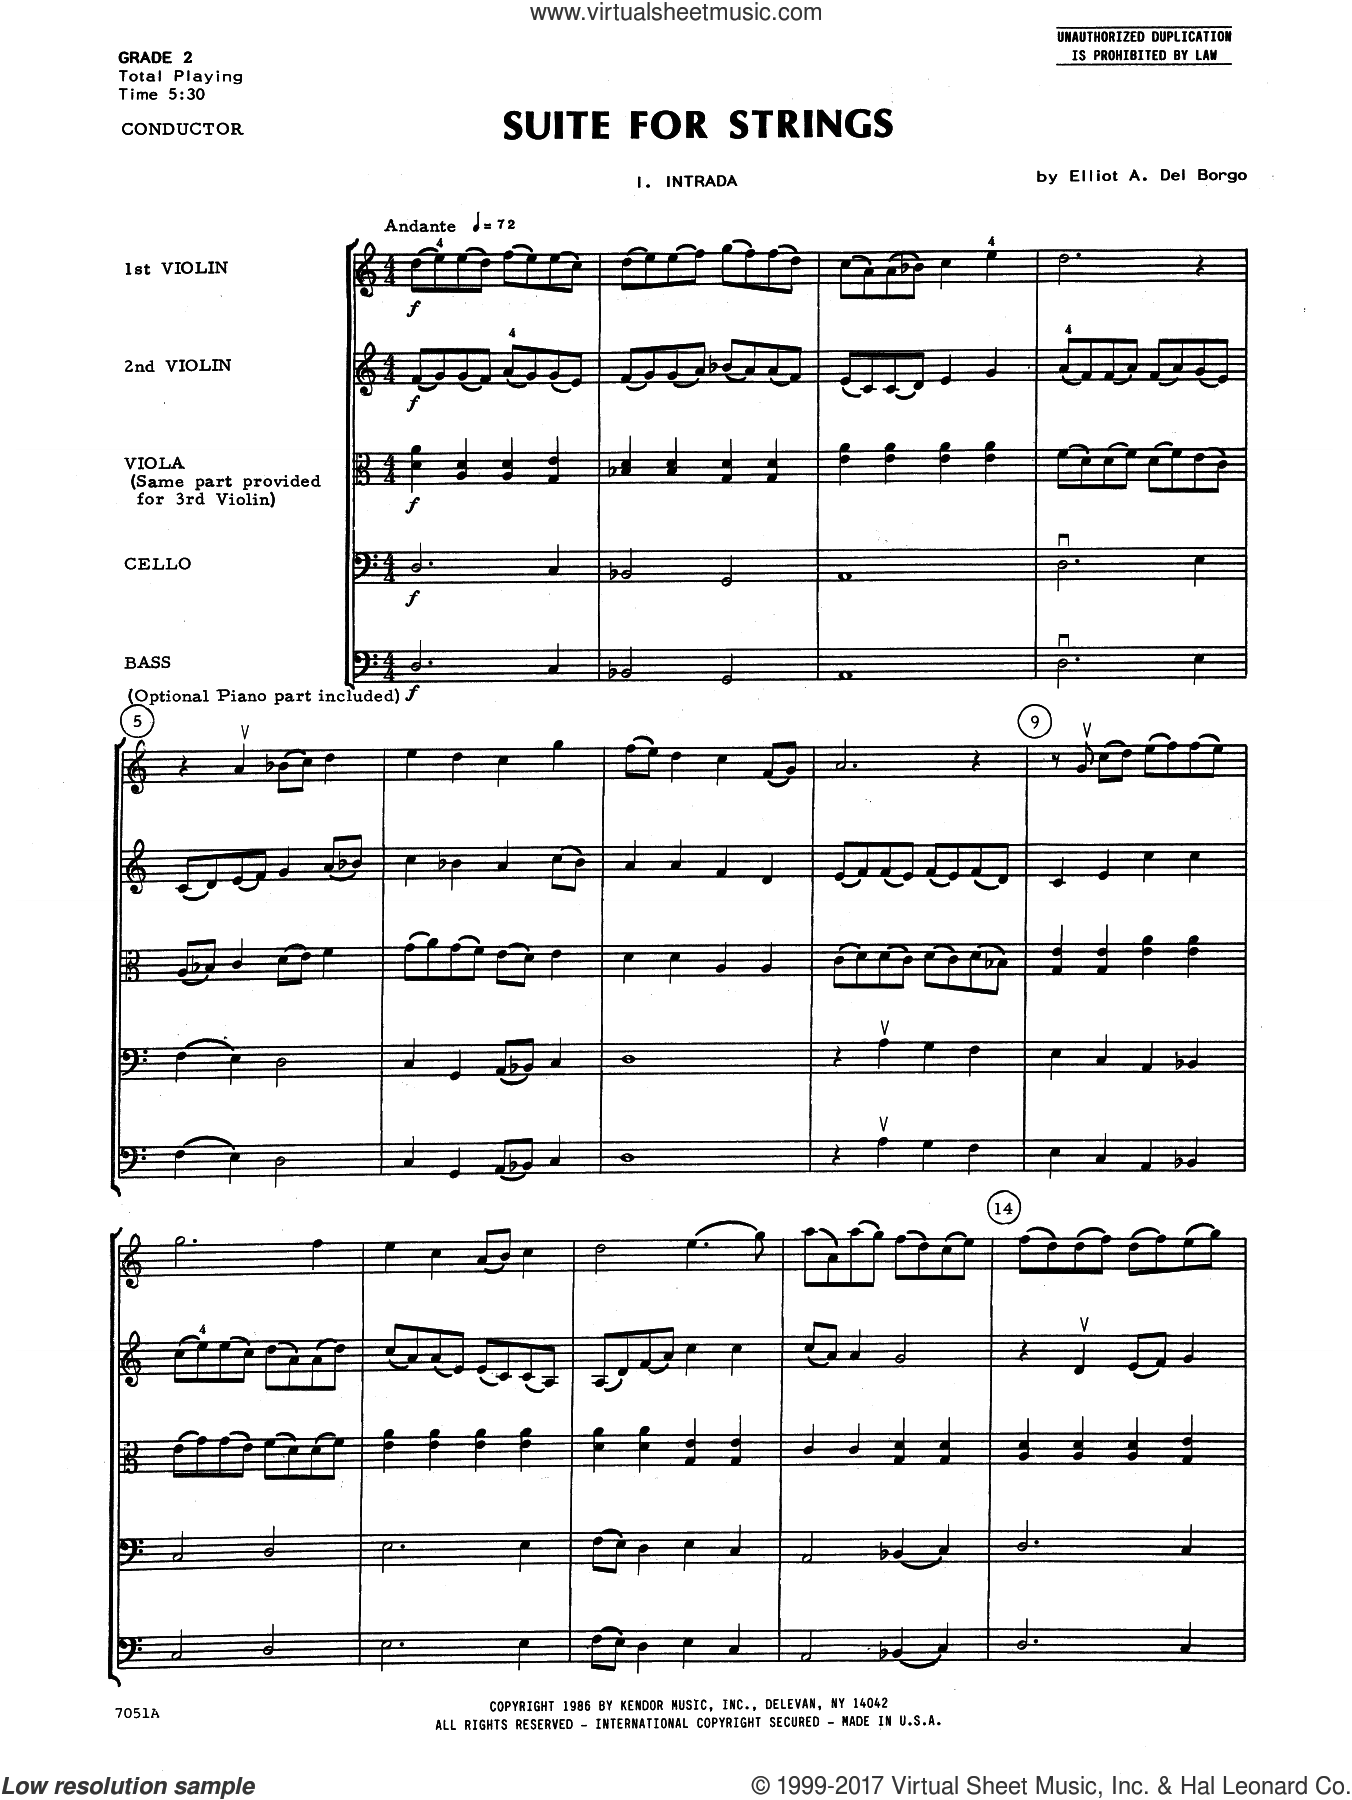 Suite for Strings (COMPLETE) sheet music for orchestra by Elliot Del Borgo, classical score, intermediate skill level